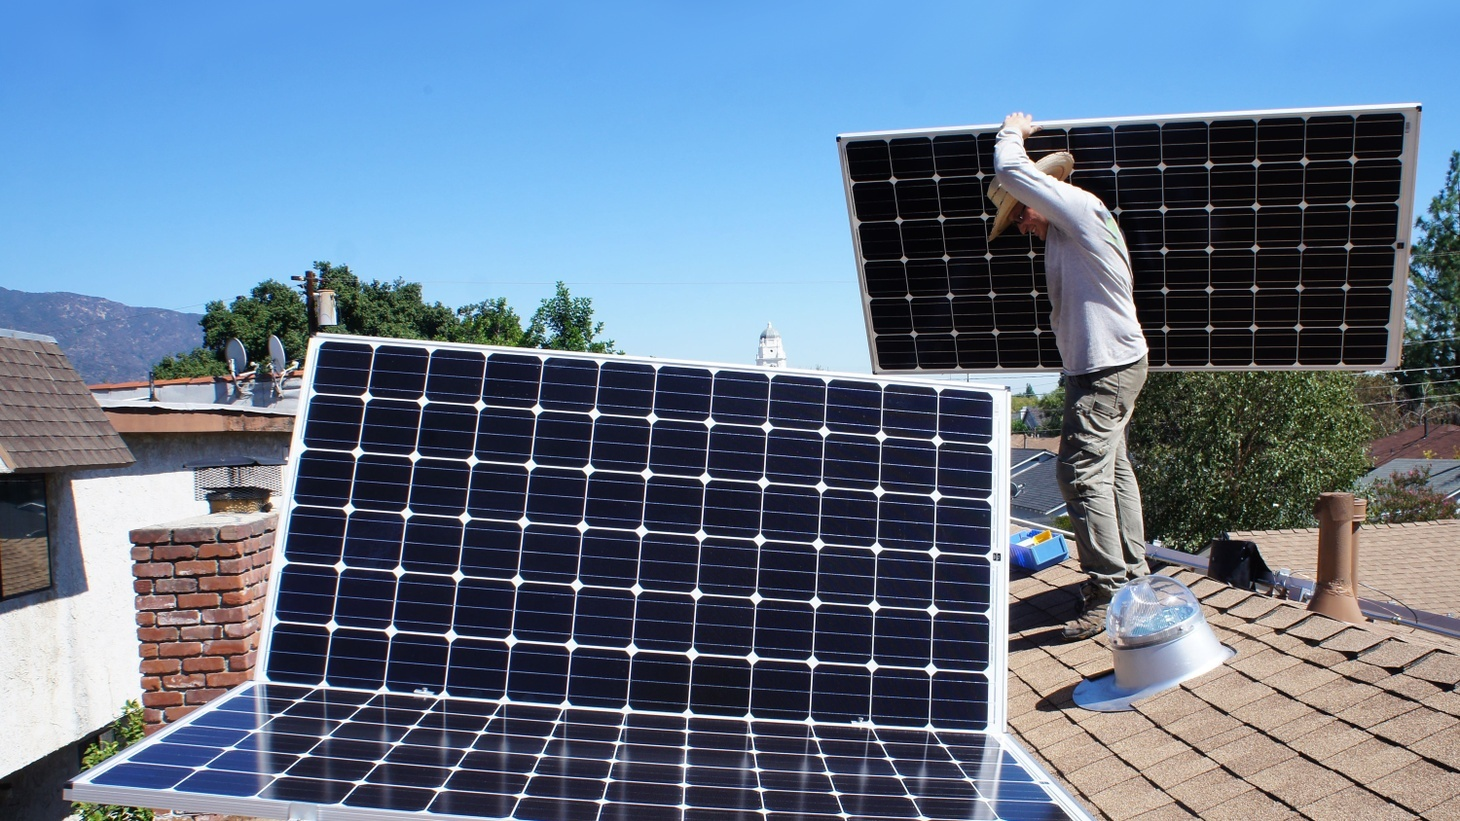 Workers install a residential solar power system at a home in Monrovia.